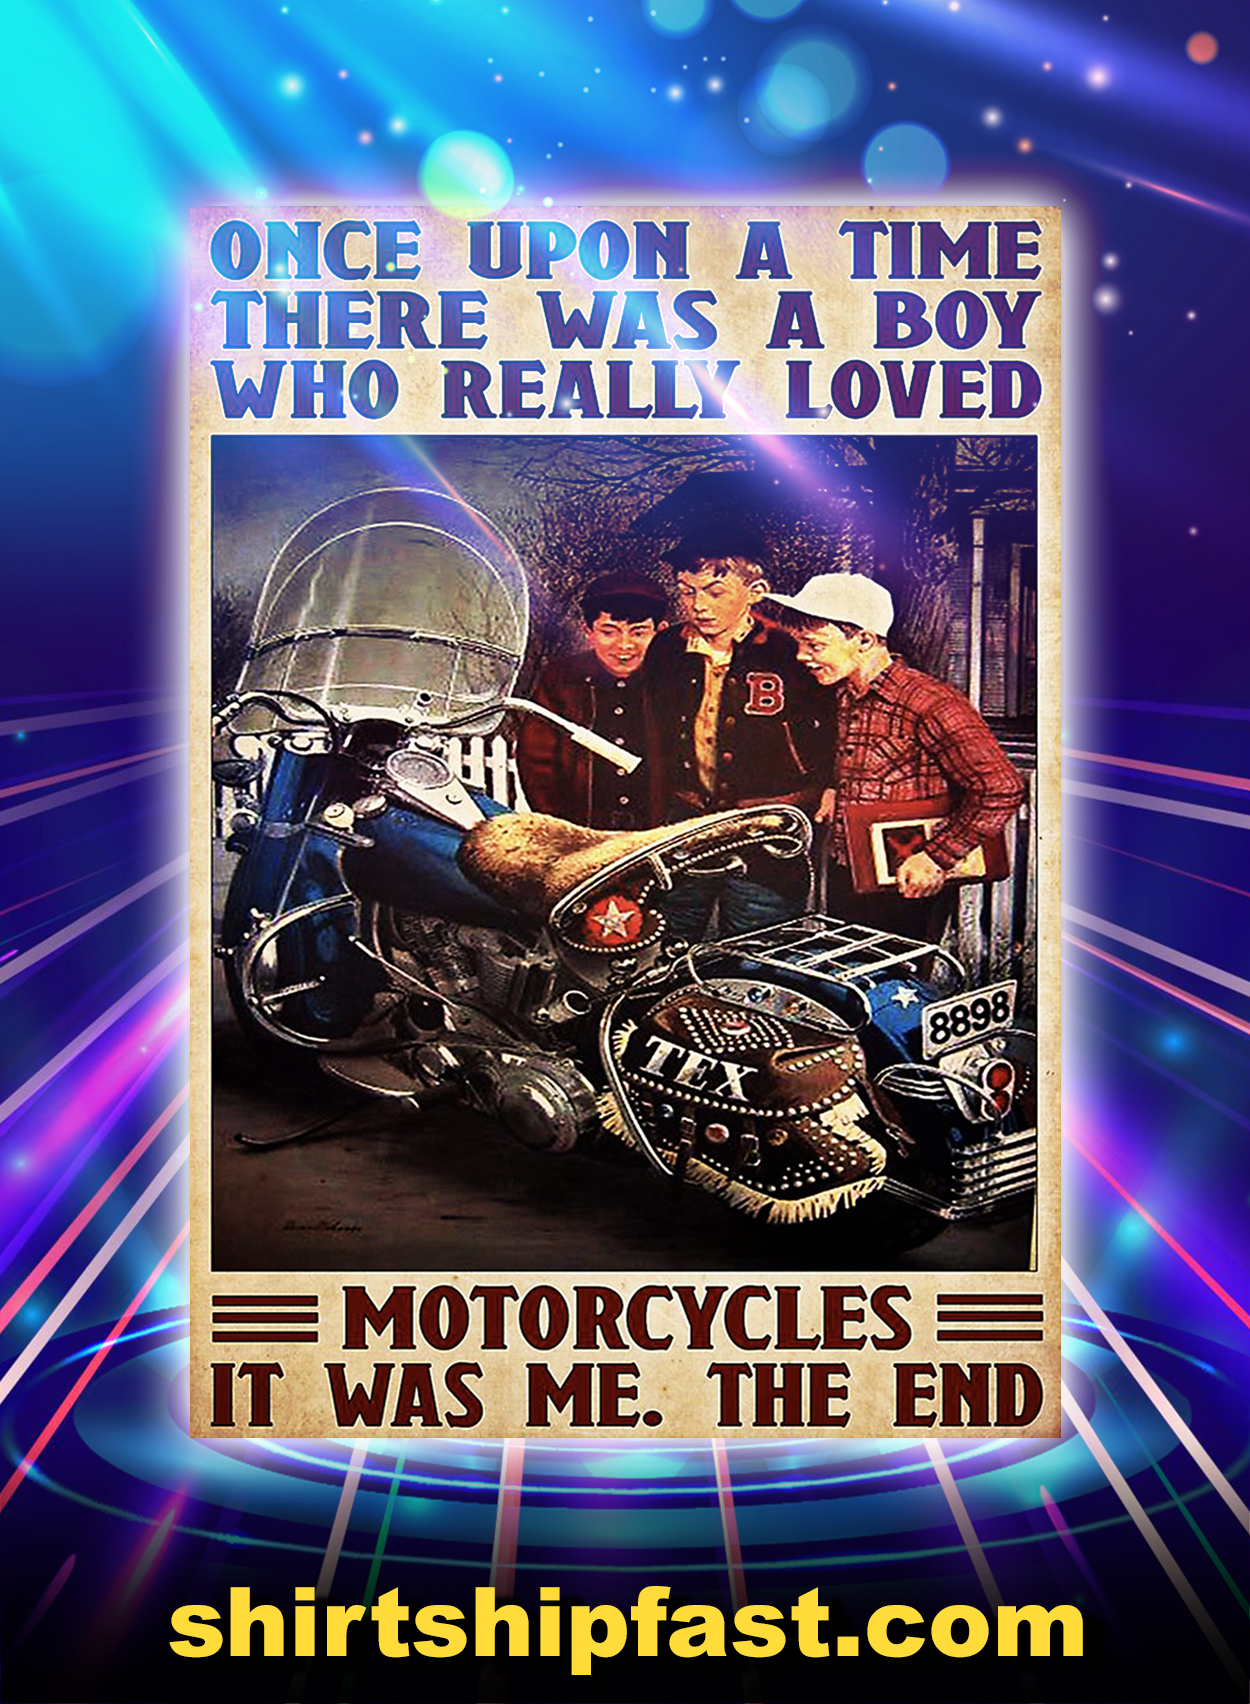 There was a boy who really loved motorcycles poster - A2